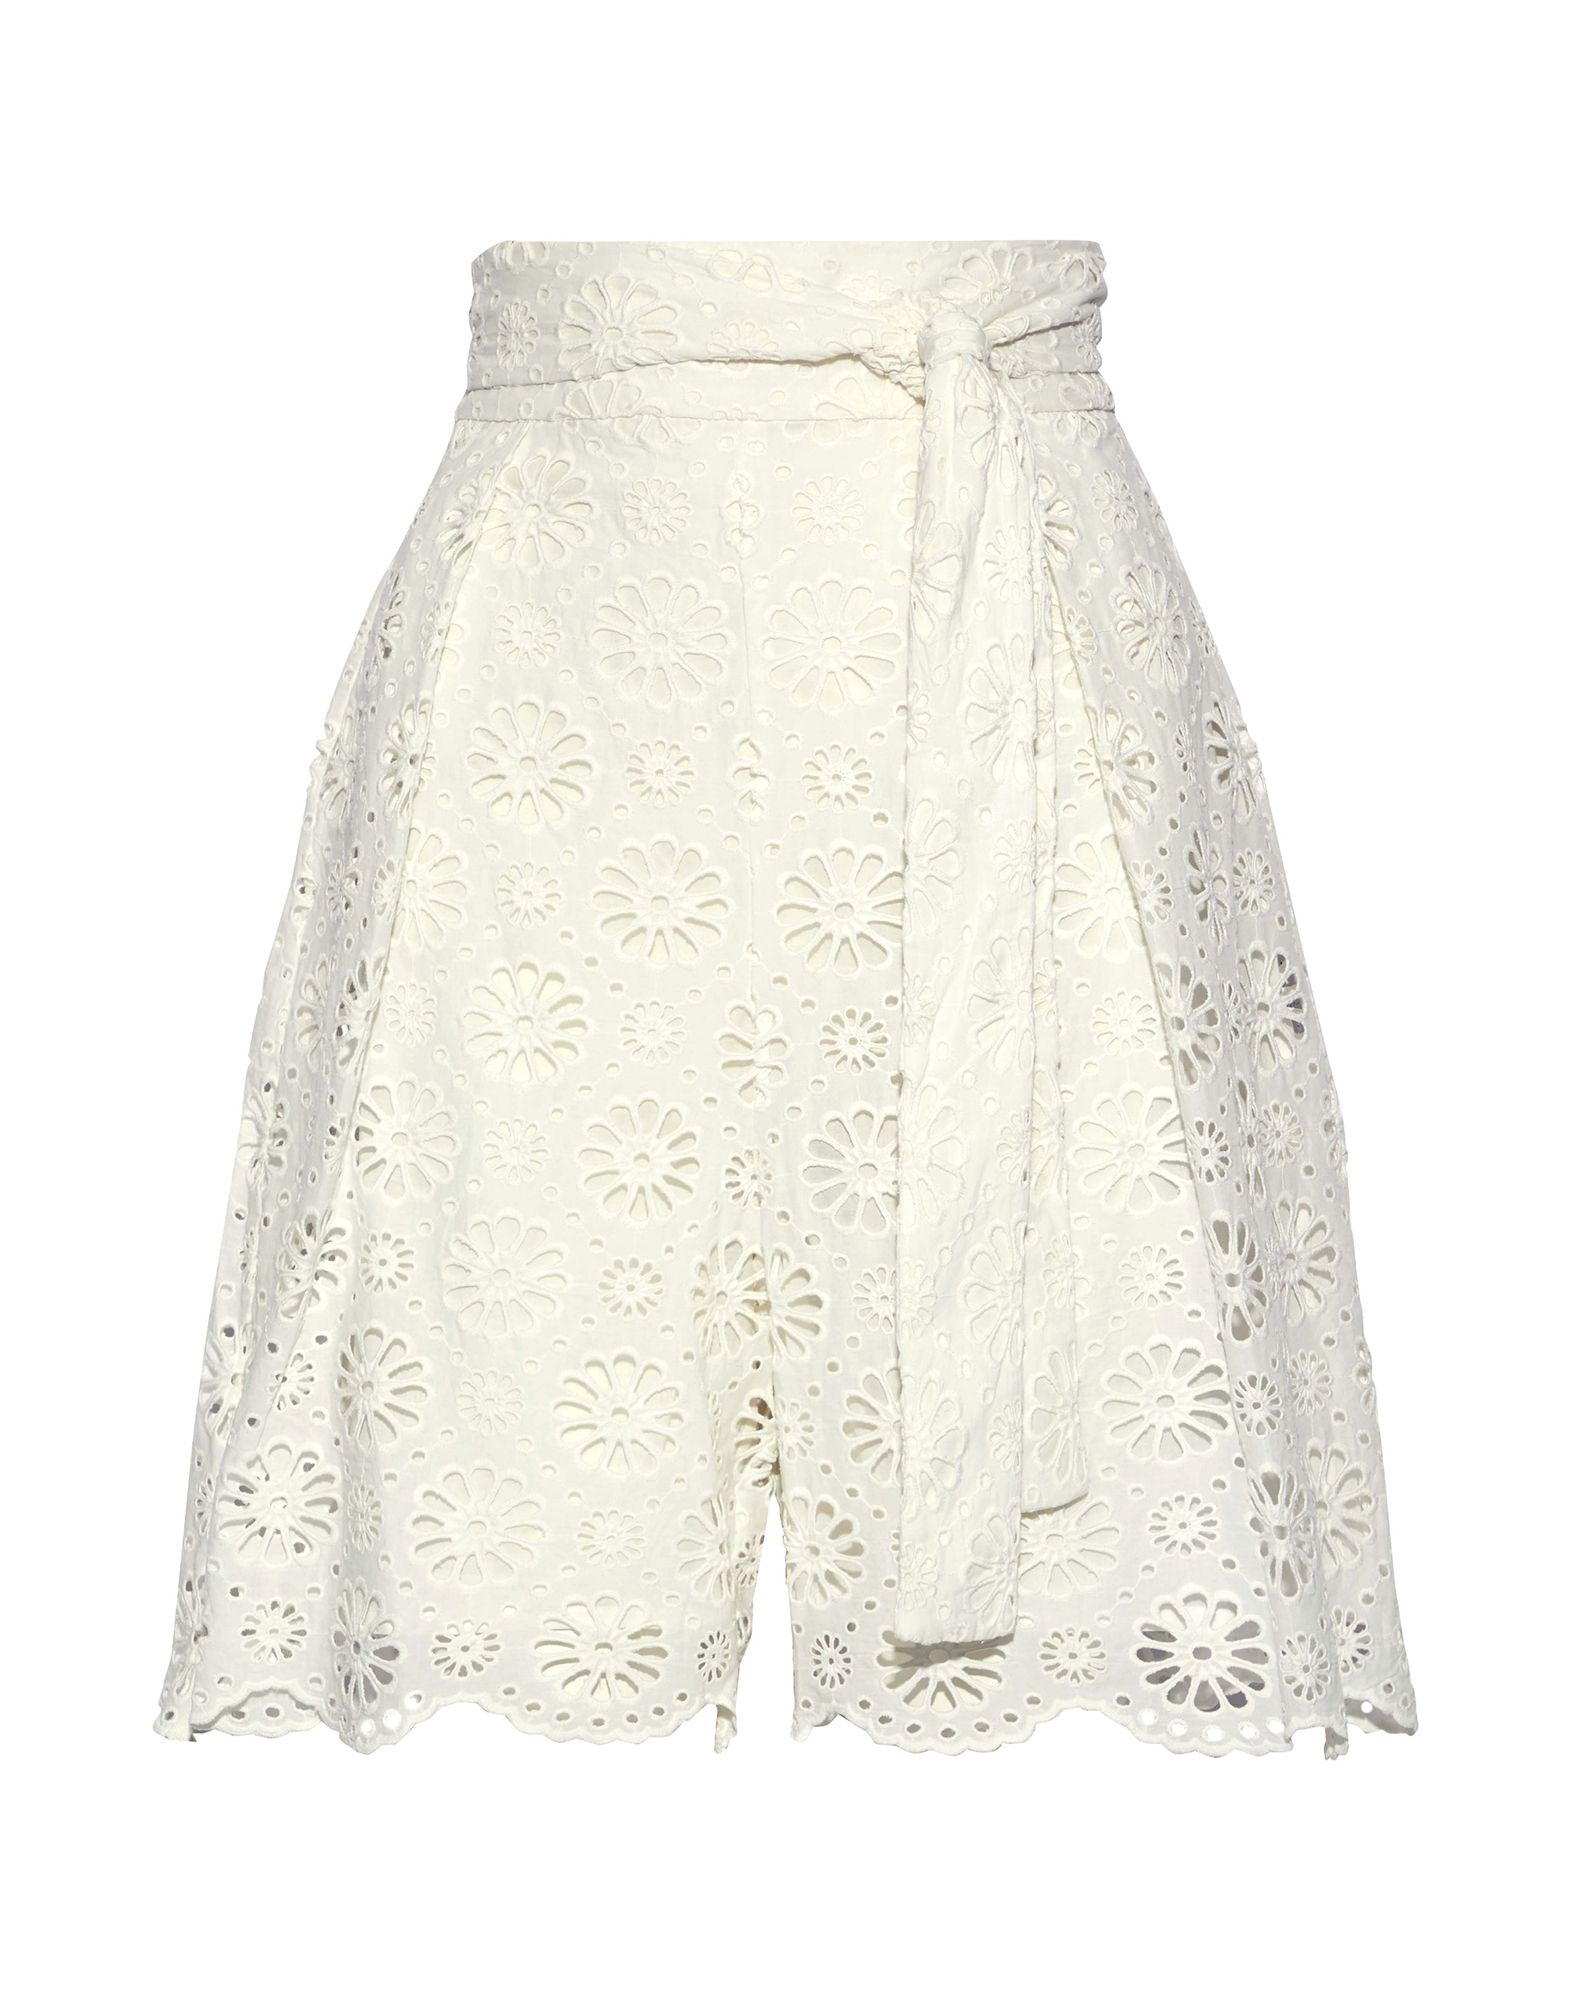 ZIMMERMANN Bermudas. lace, basic solid color, folds, belt, high waisted, regular fit, hook-and-bar, zip, no pockets, fully lined. 100% Cotton